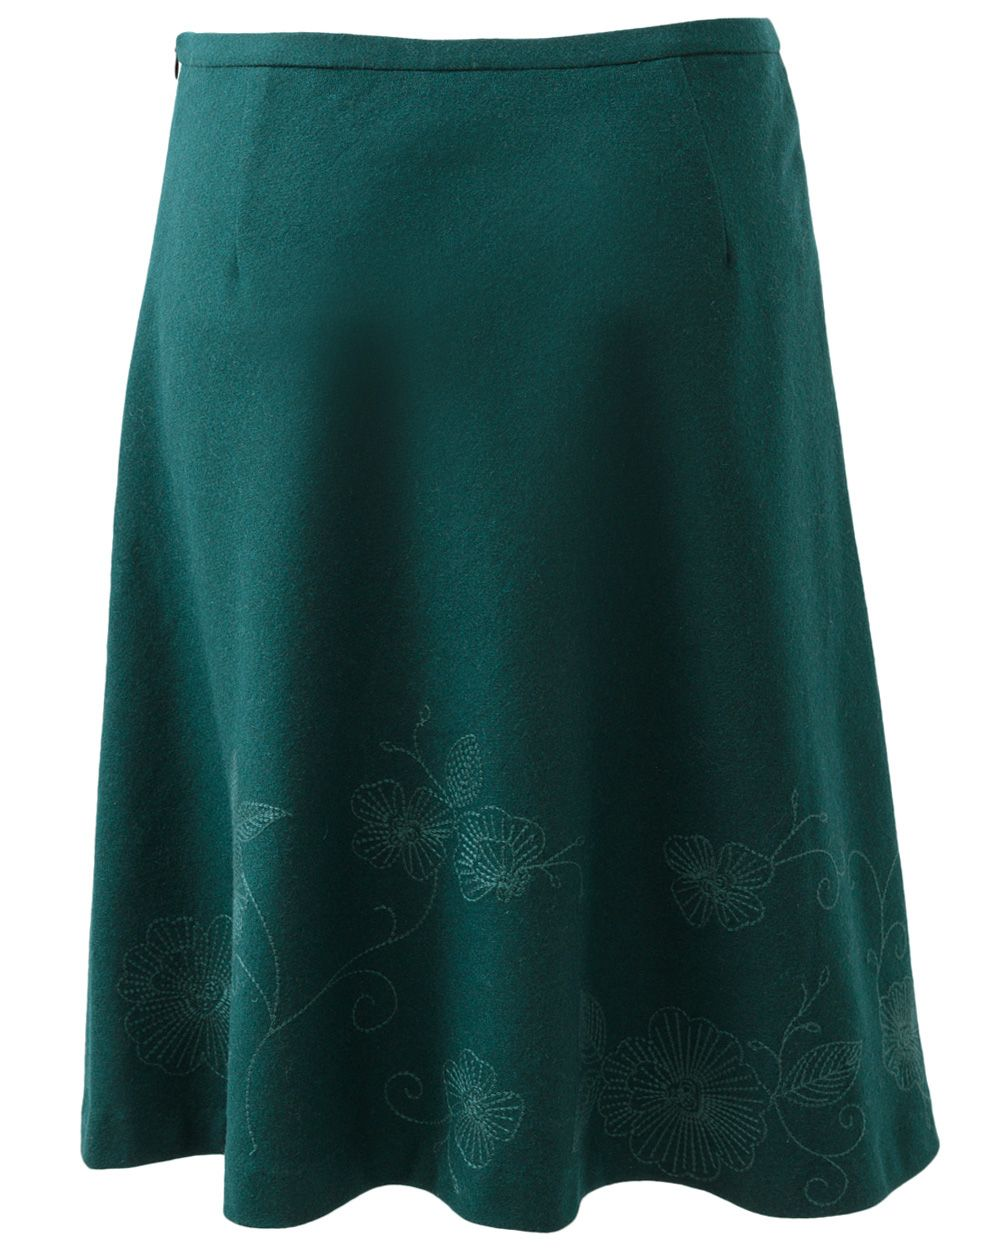 Fior embroidered skirt